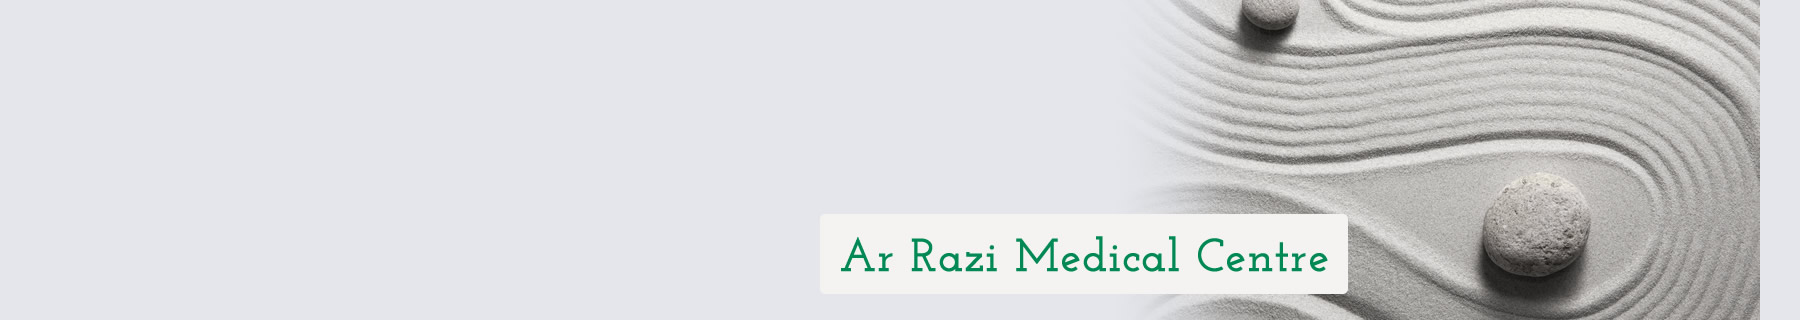 Surgery Connect provided Ar Razi Medical Centre with vastly improved staff/patient communications without adding to their costs